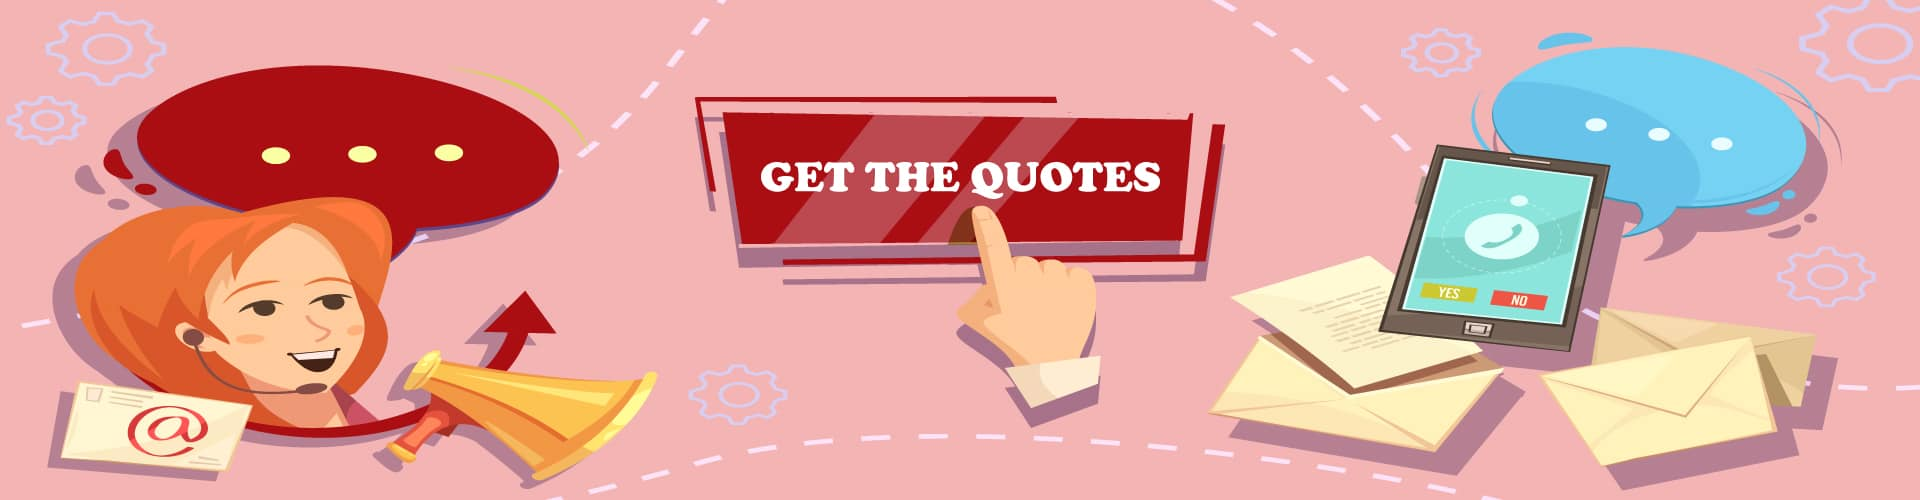 GET THE QUOTES